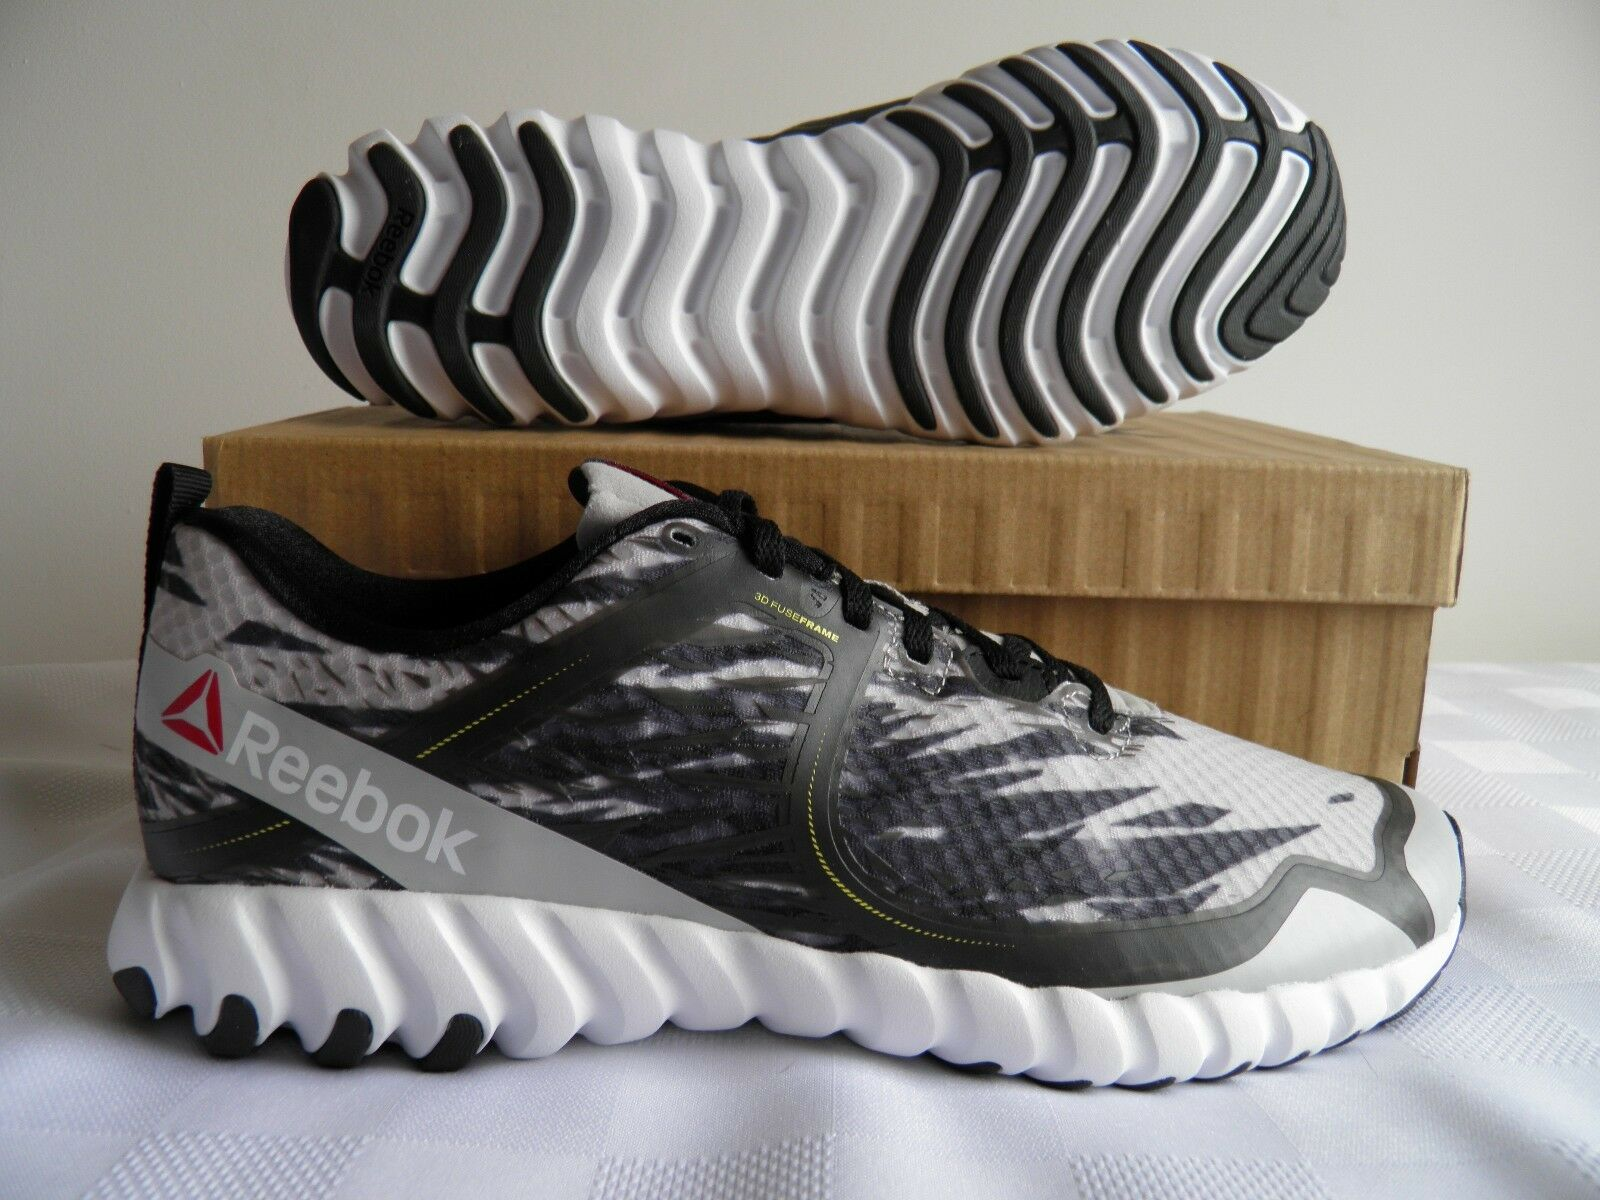 f0bdc3c5ffe Купить Reebok Twistform Cruz Men s Running Shoes Size на eBay.com из ...